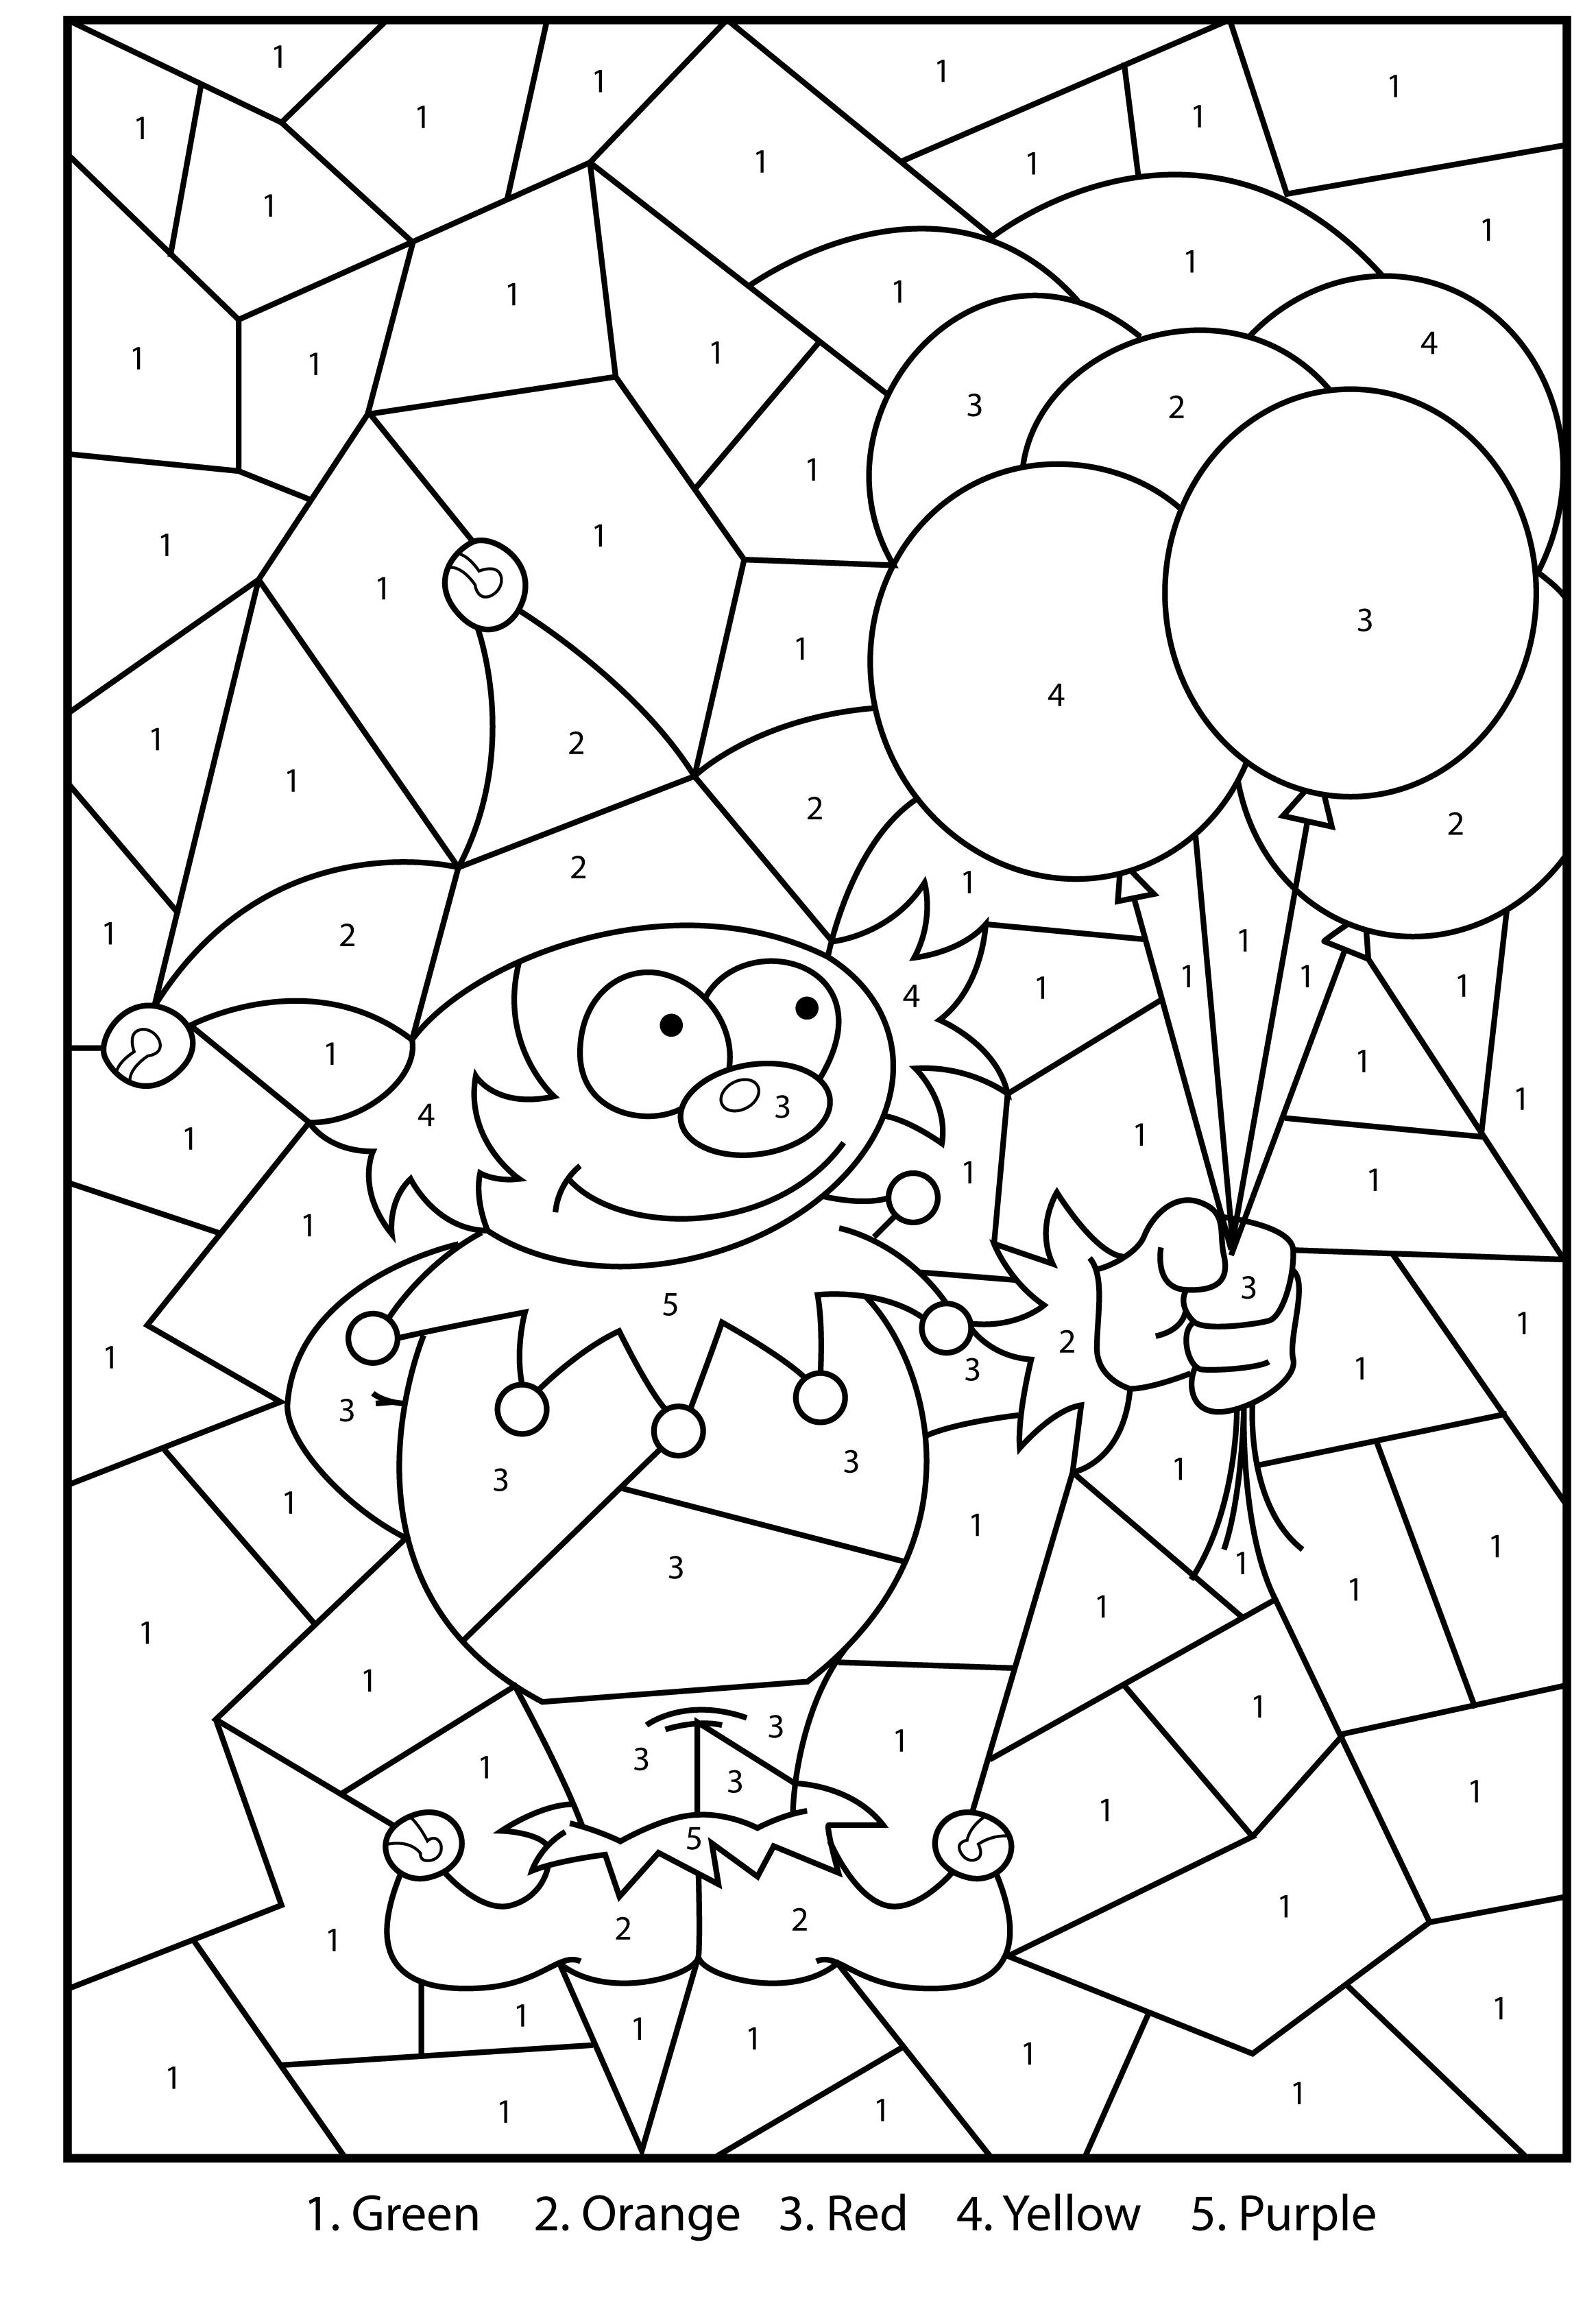 coloring by number color by number koala stock illustration download image coloring number by